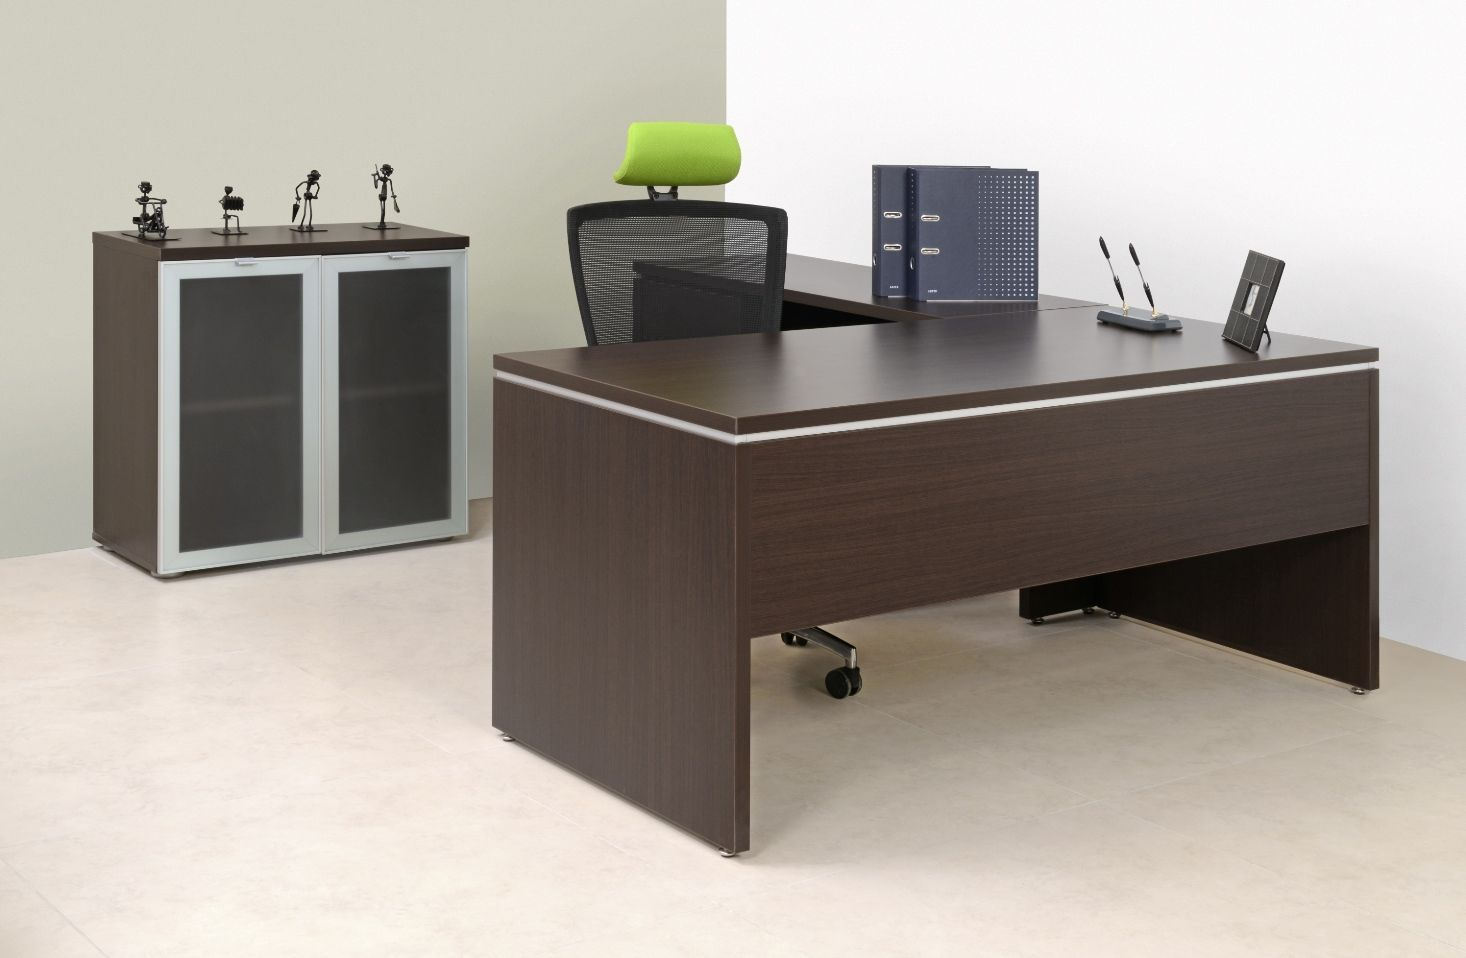 Gl Office From Jwico Home Decor